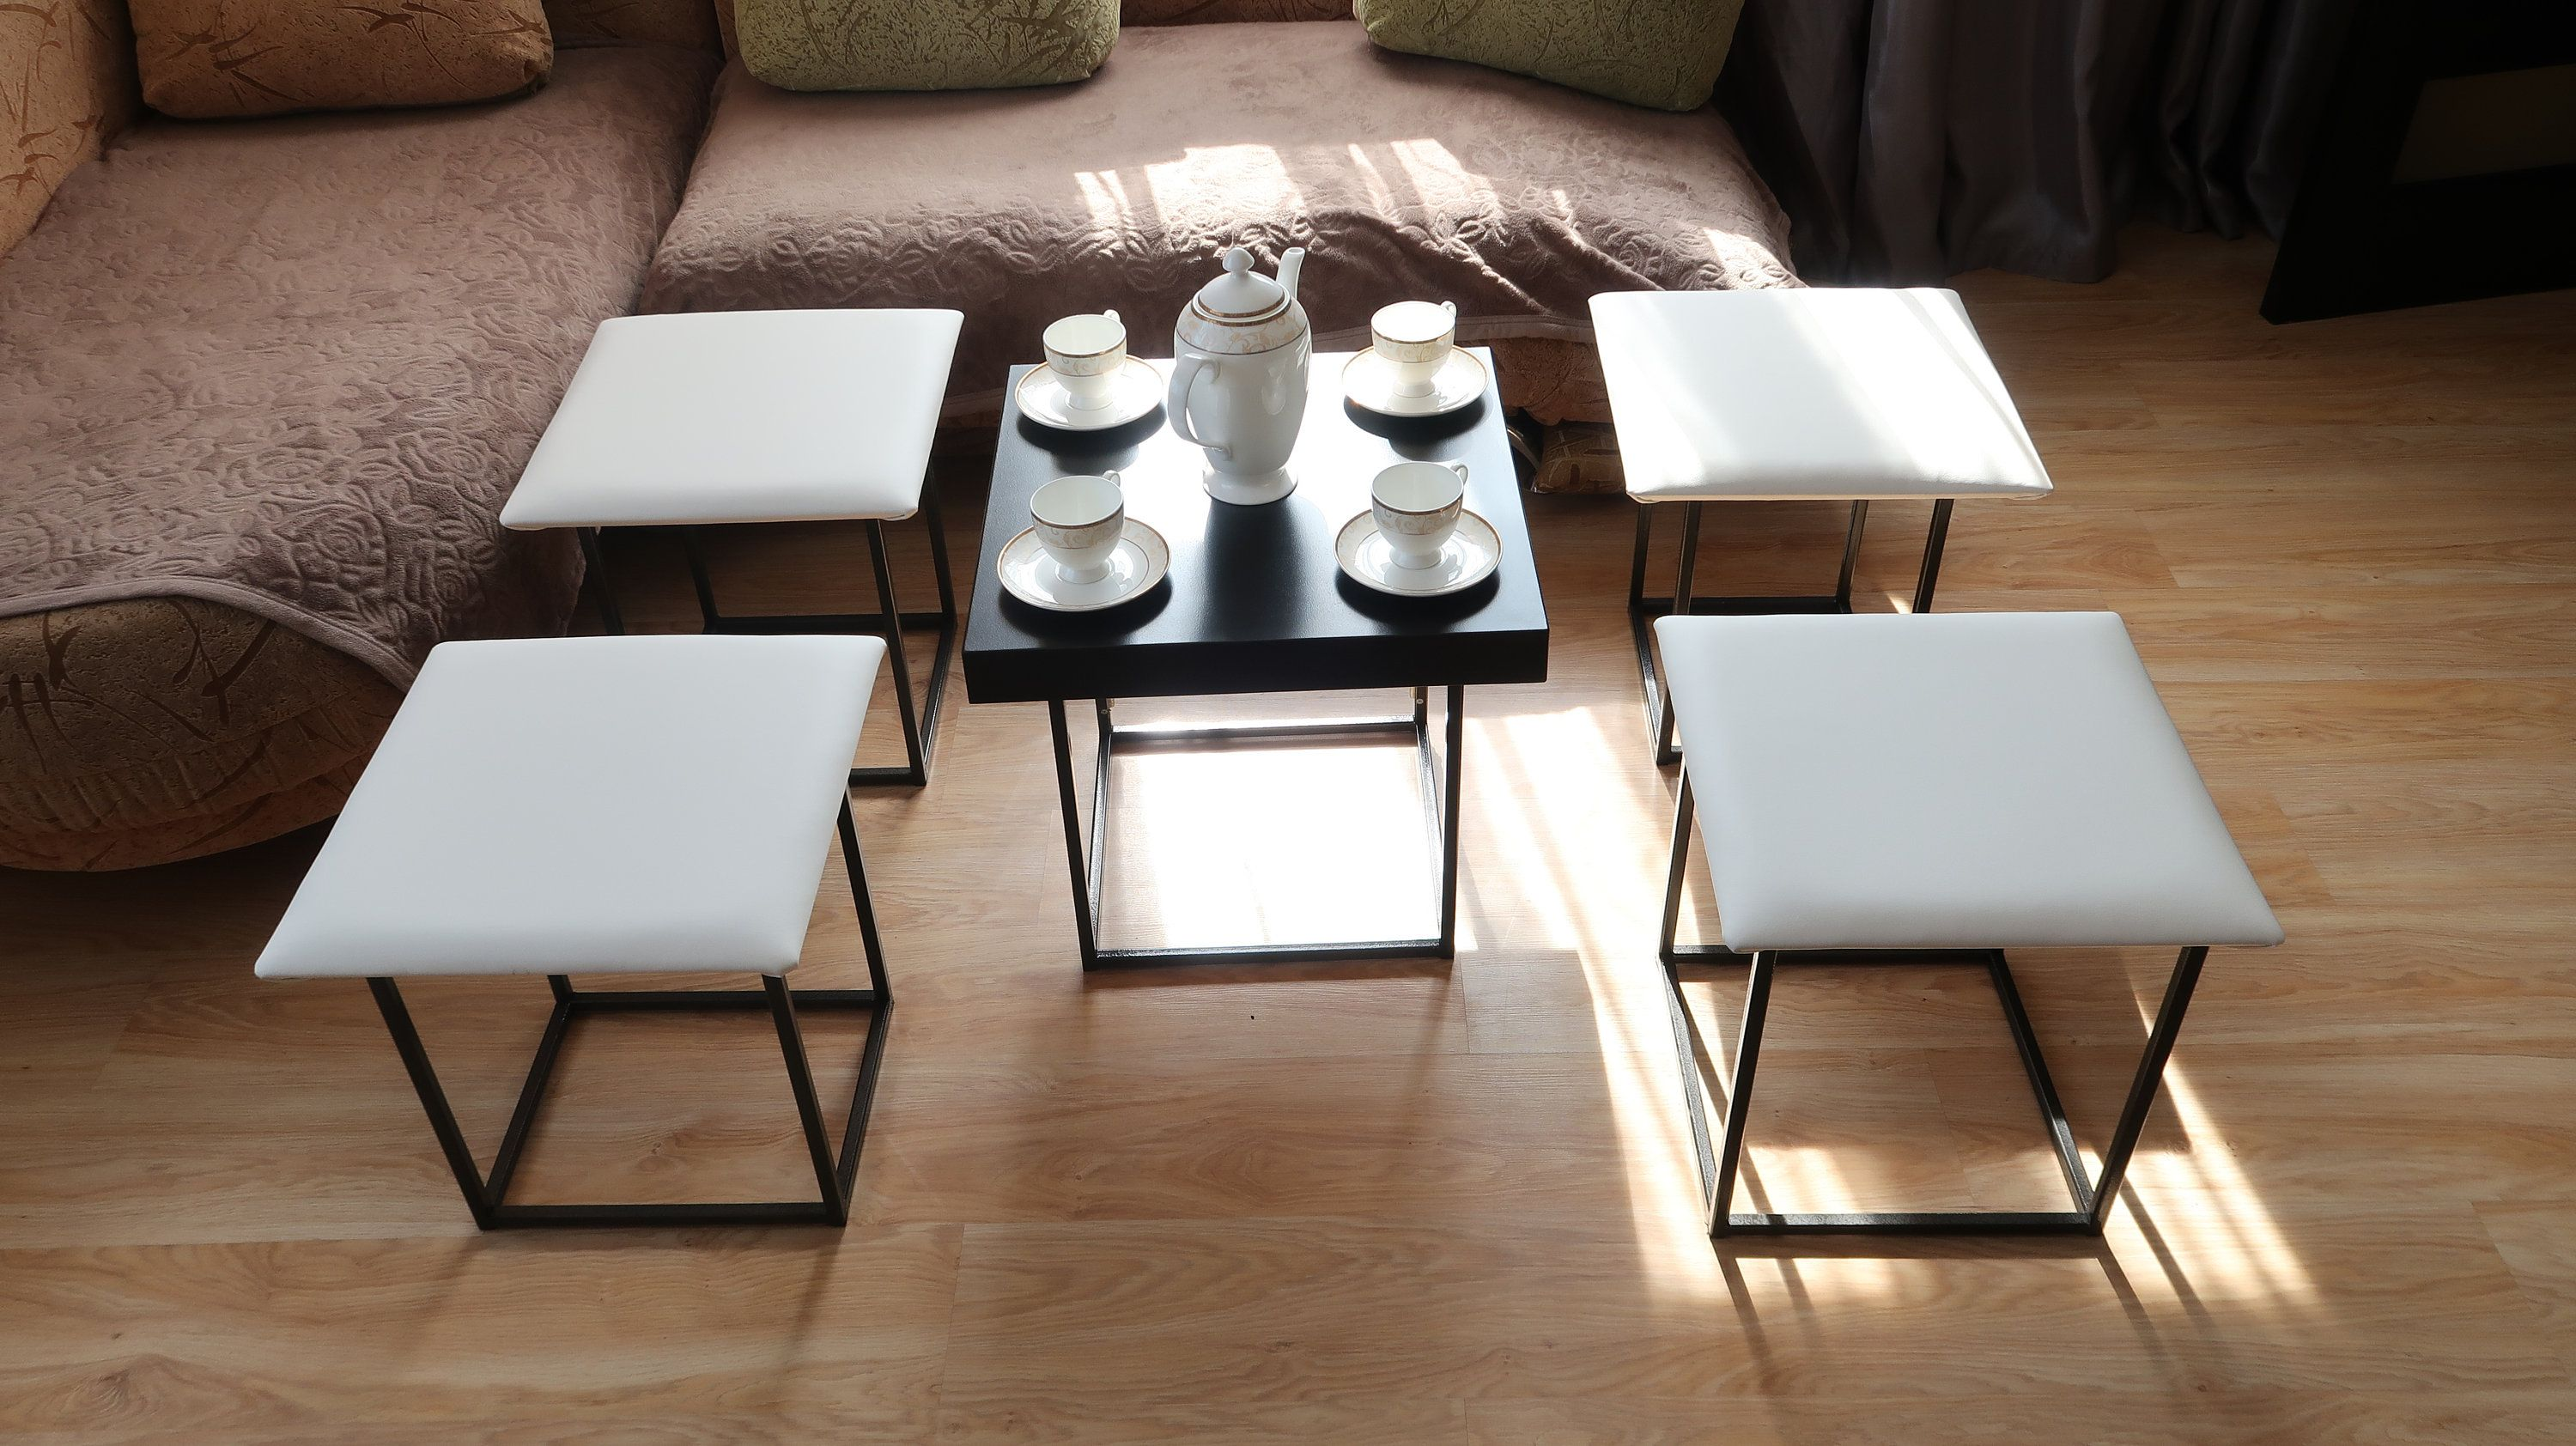 6 Cafe Stoelen.Cube 6 In 1 Transformer Ottoman Coffee Table Or 5 Chair